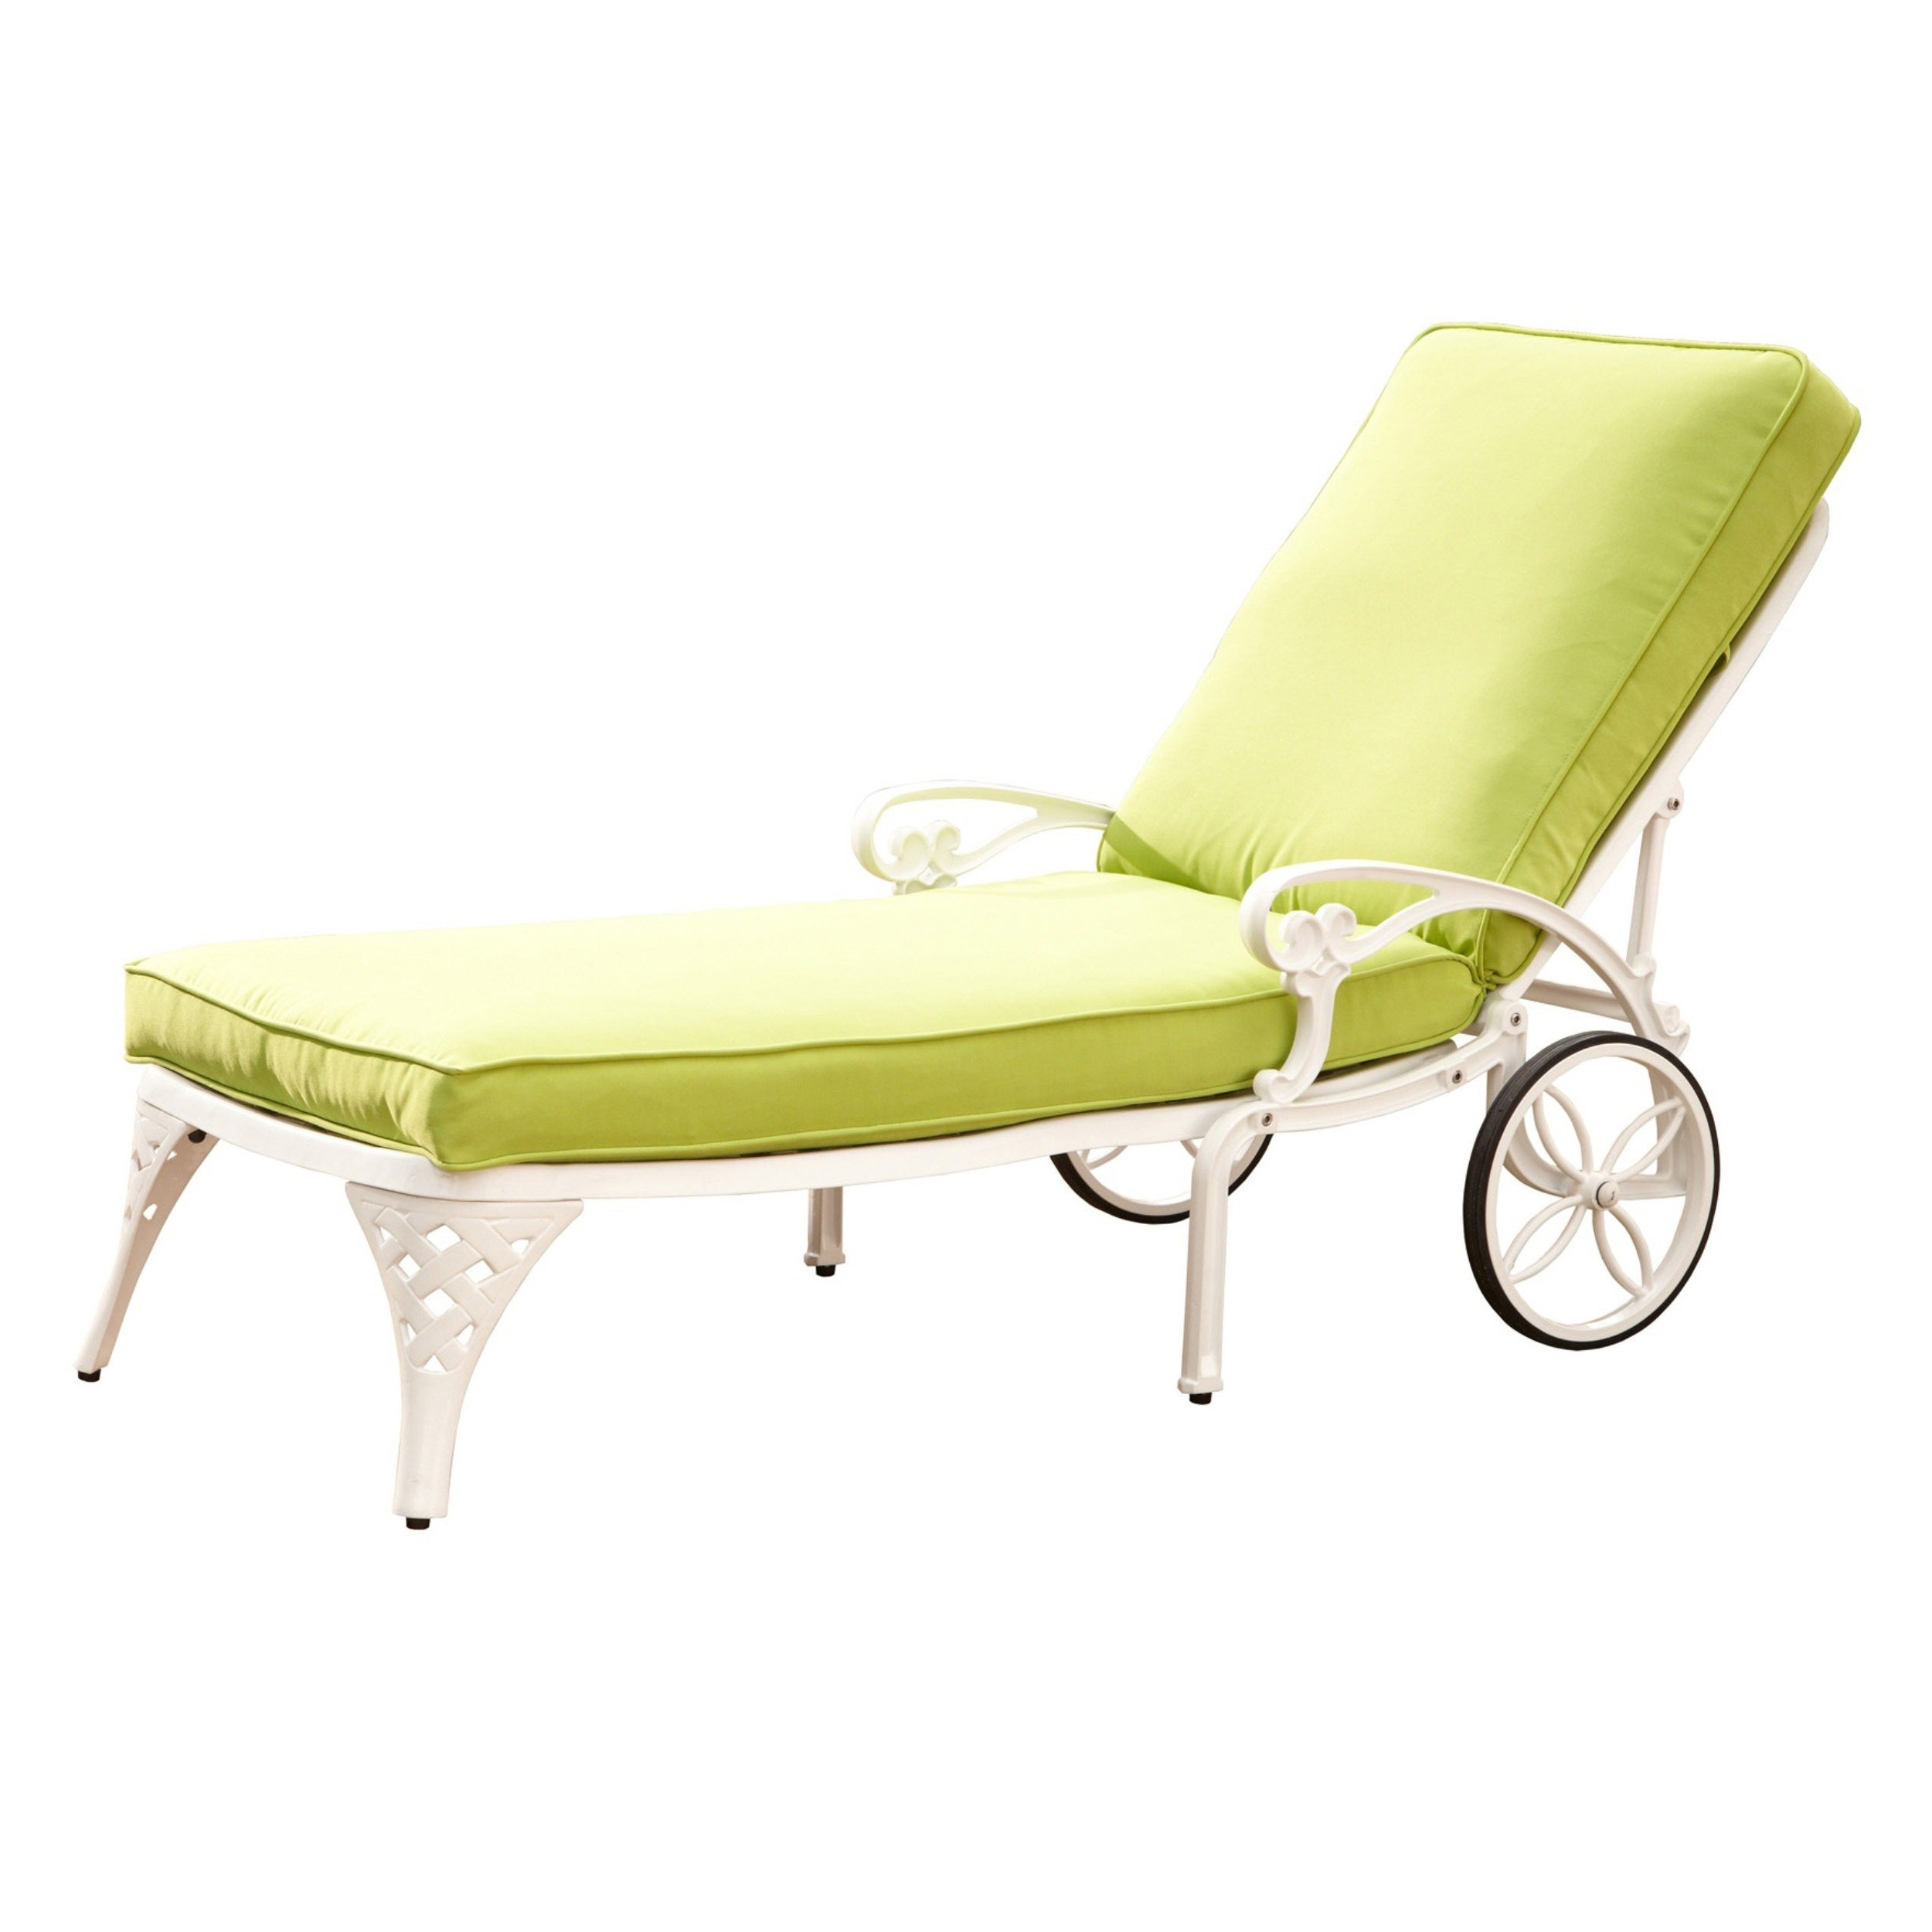 Most Recent Biscayne Chaise Lounge Chair With Cushionhome Styles Regarding Floral Blossom Chaise Lounge Chairs With Cushion (View 22 of 25)